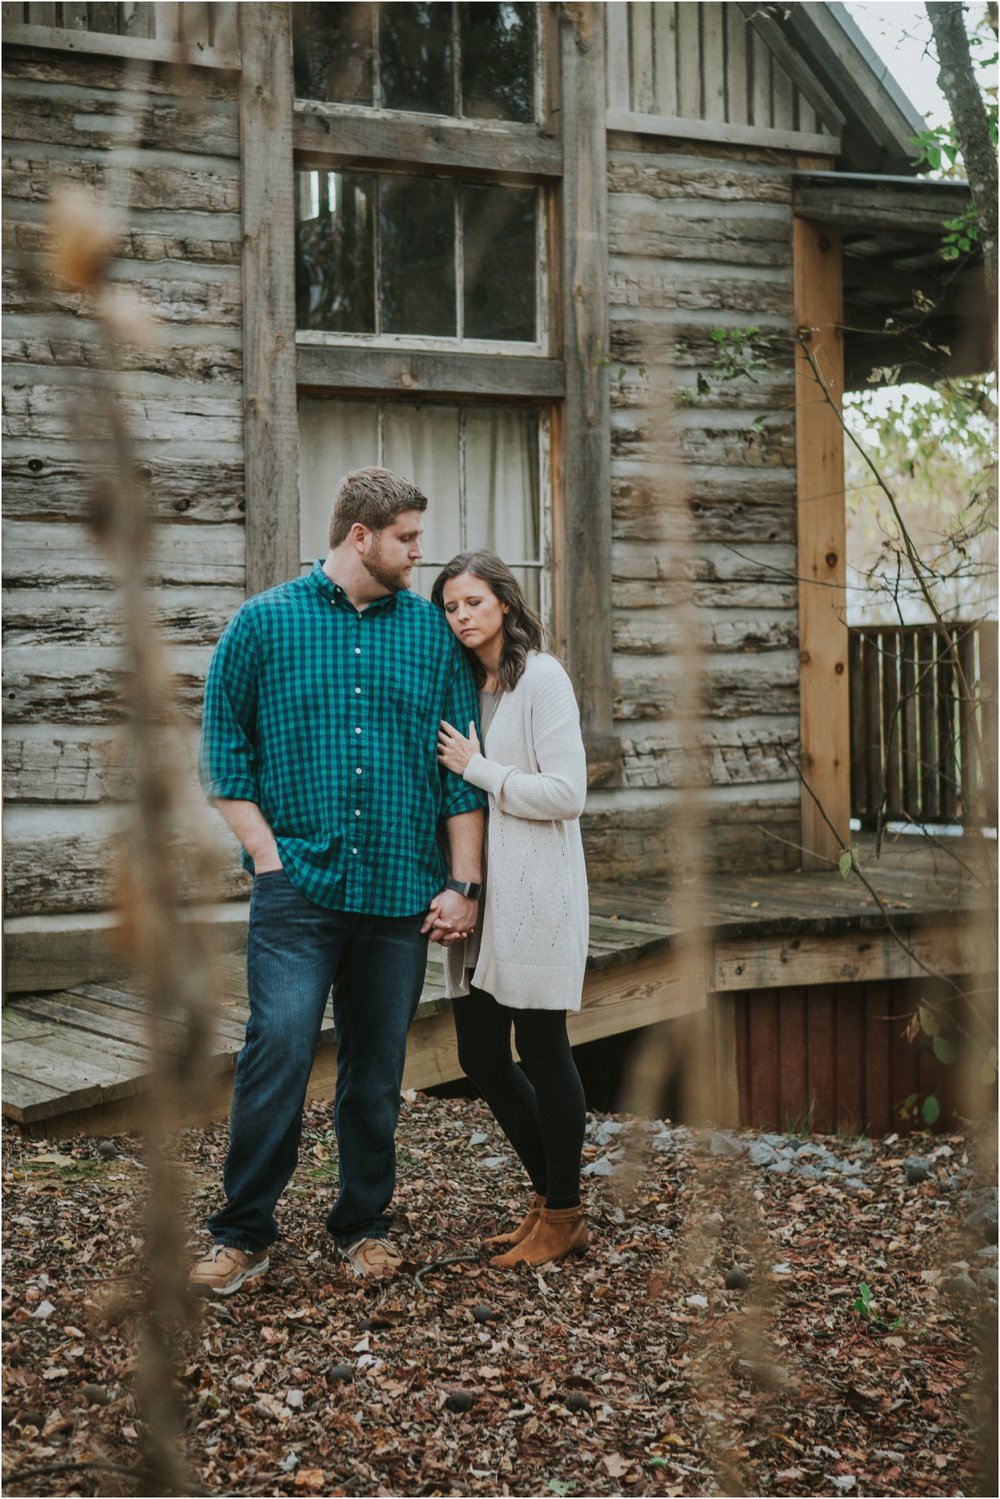 katy-sergent-millstone-limestone-tn-rustic-fall-engagement-session-adventurous-outdoors-intimate-elopement-wedding-northeast-johnson-city-photographer_0031.jpg